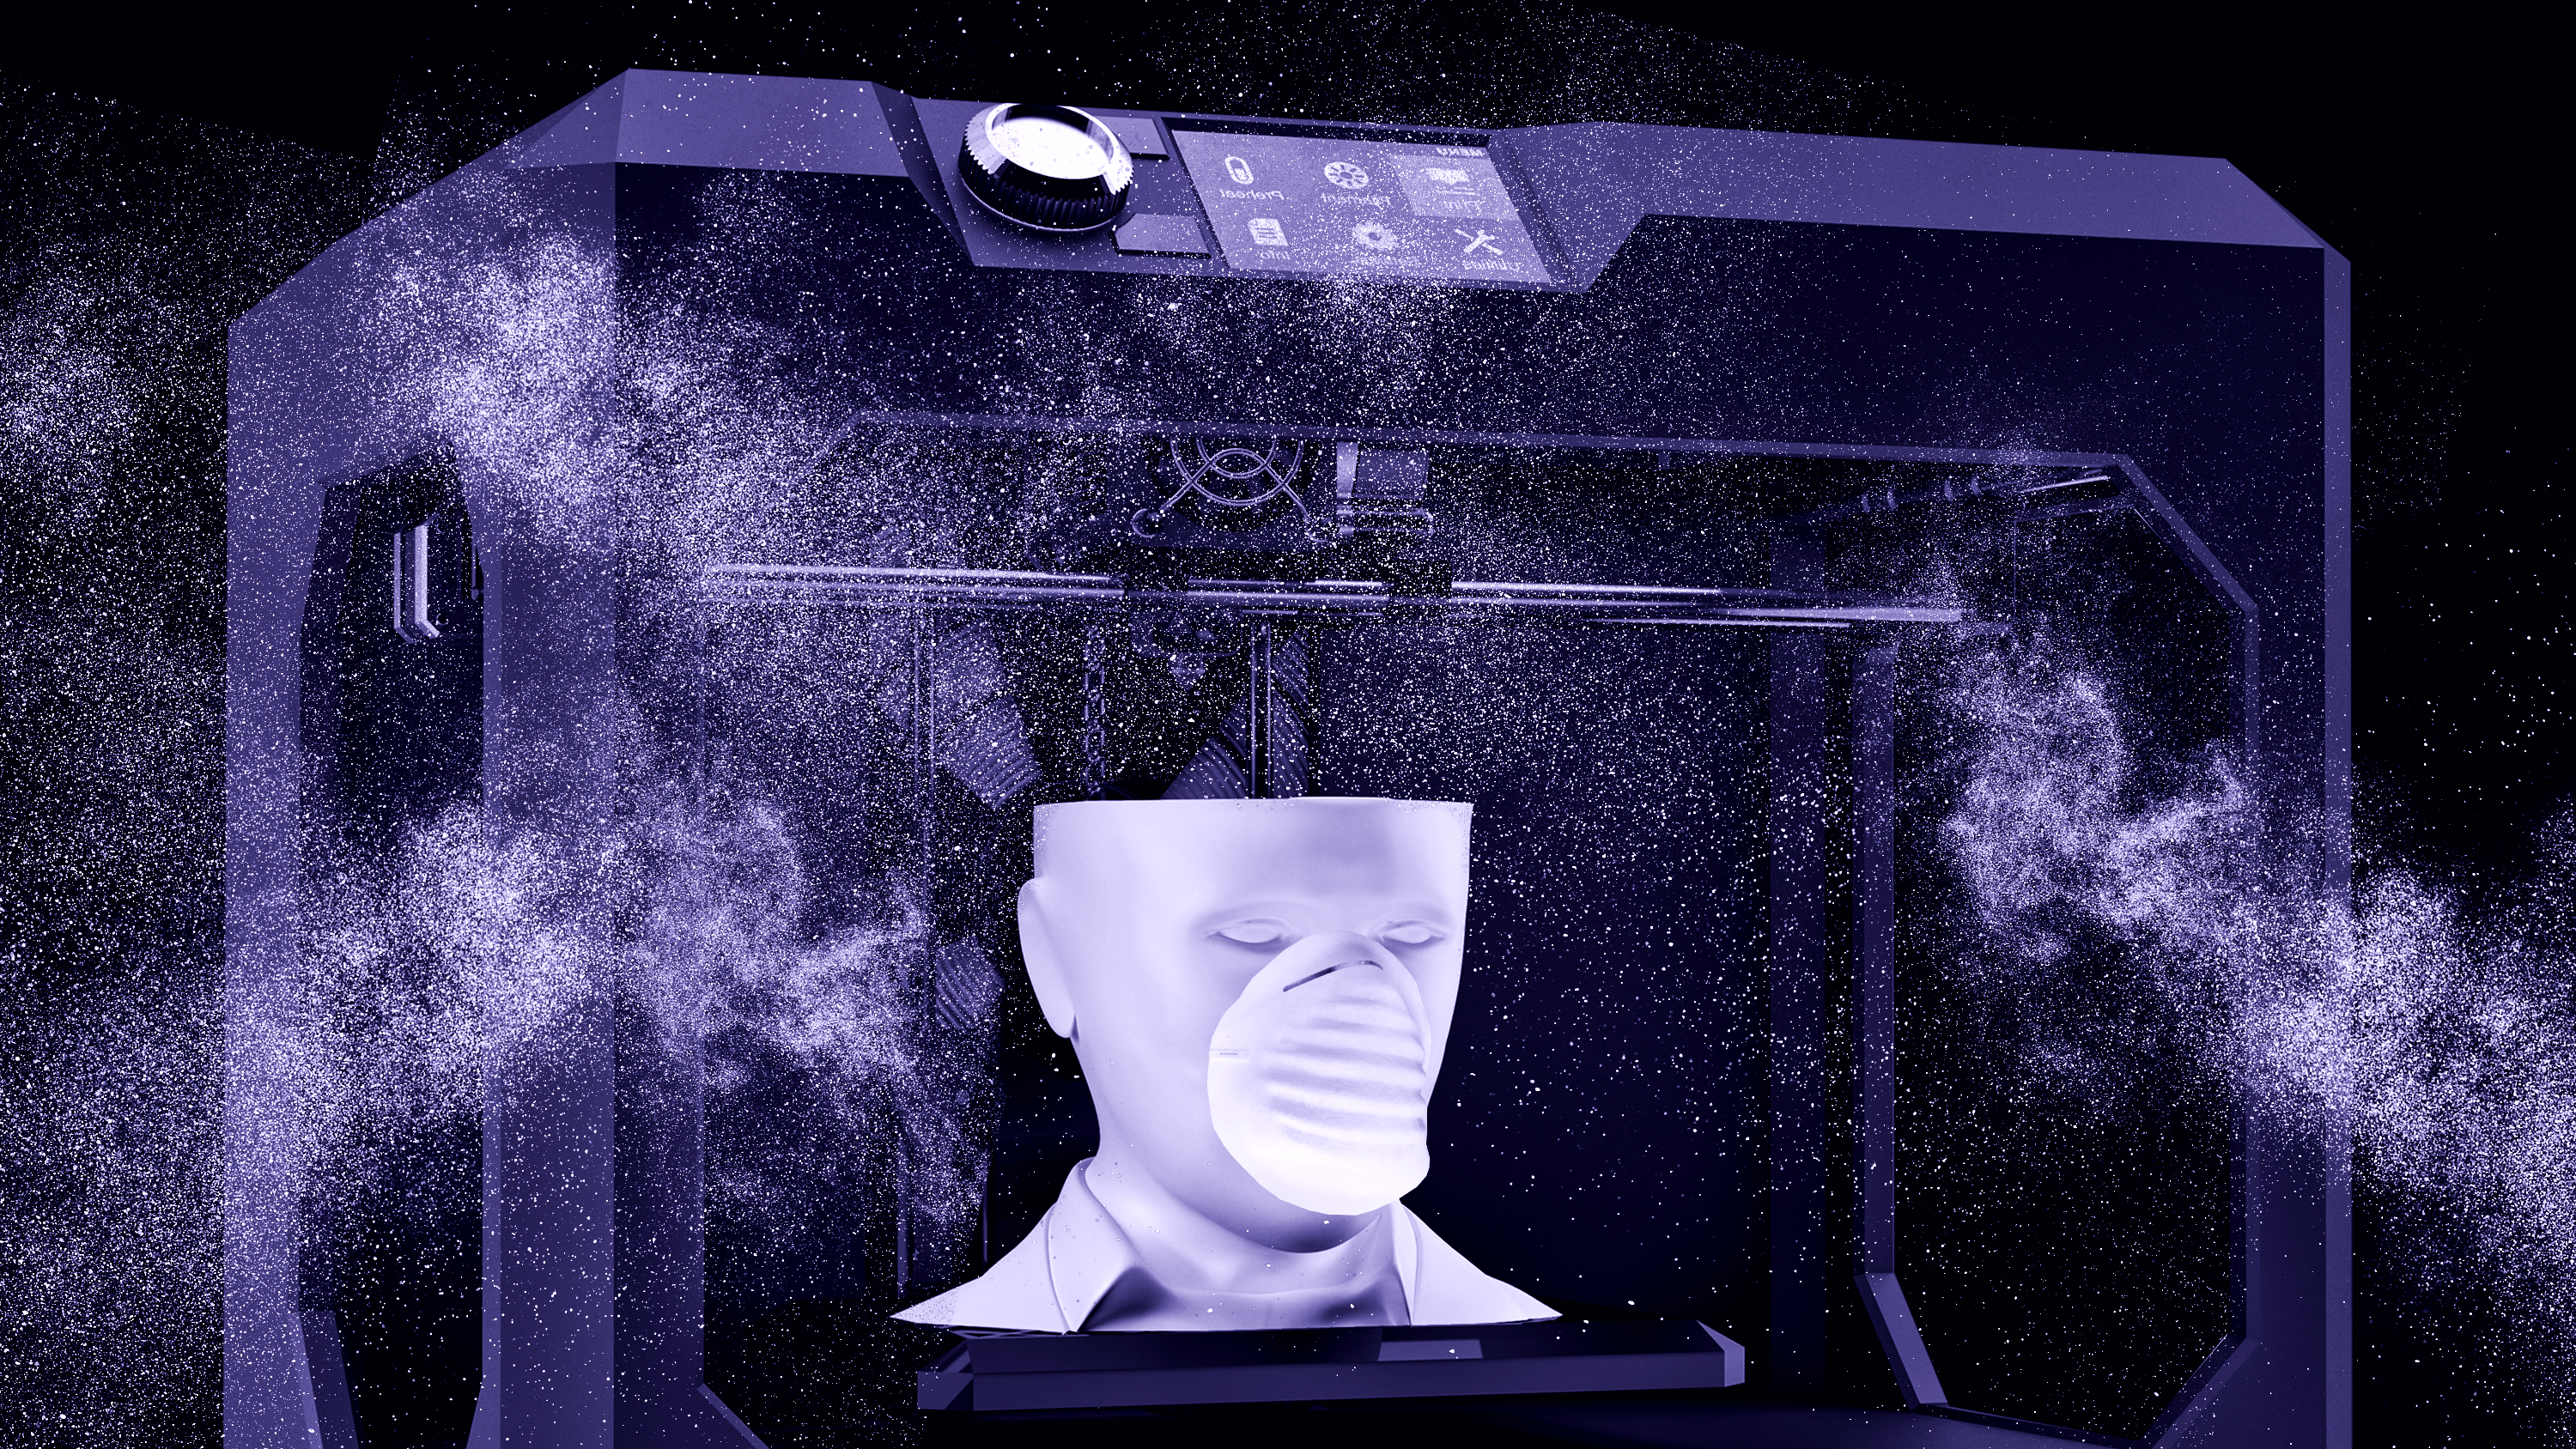 New Study Details All The Toxic Stuff Spewed Out By 3D Printers